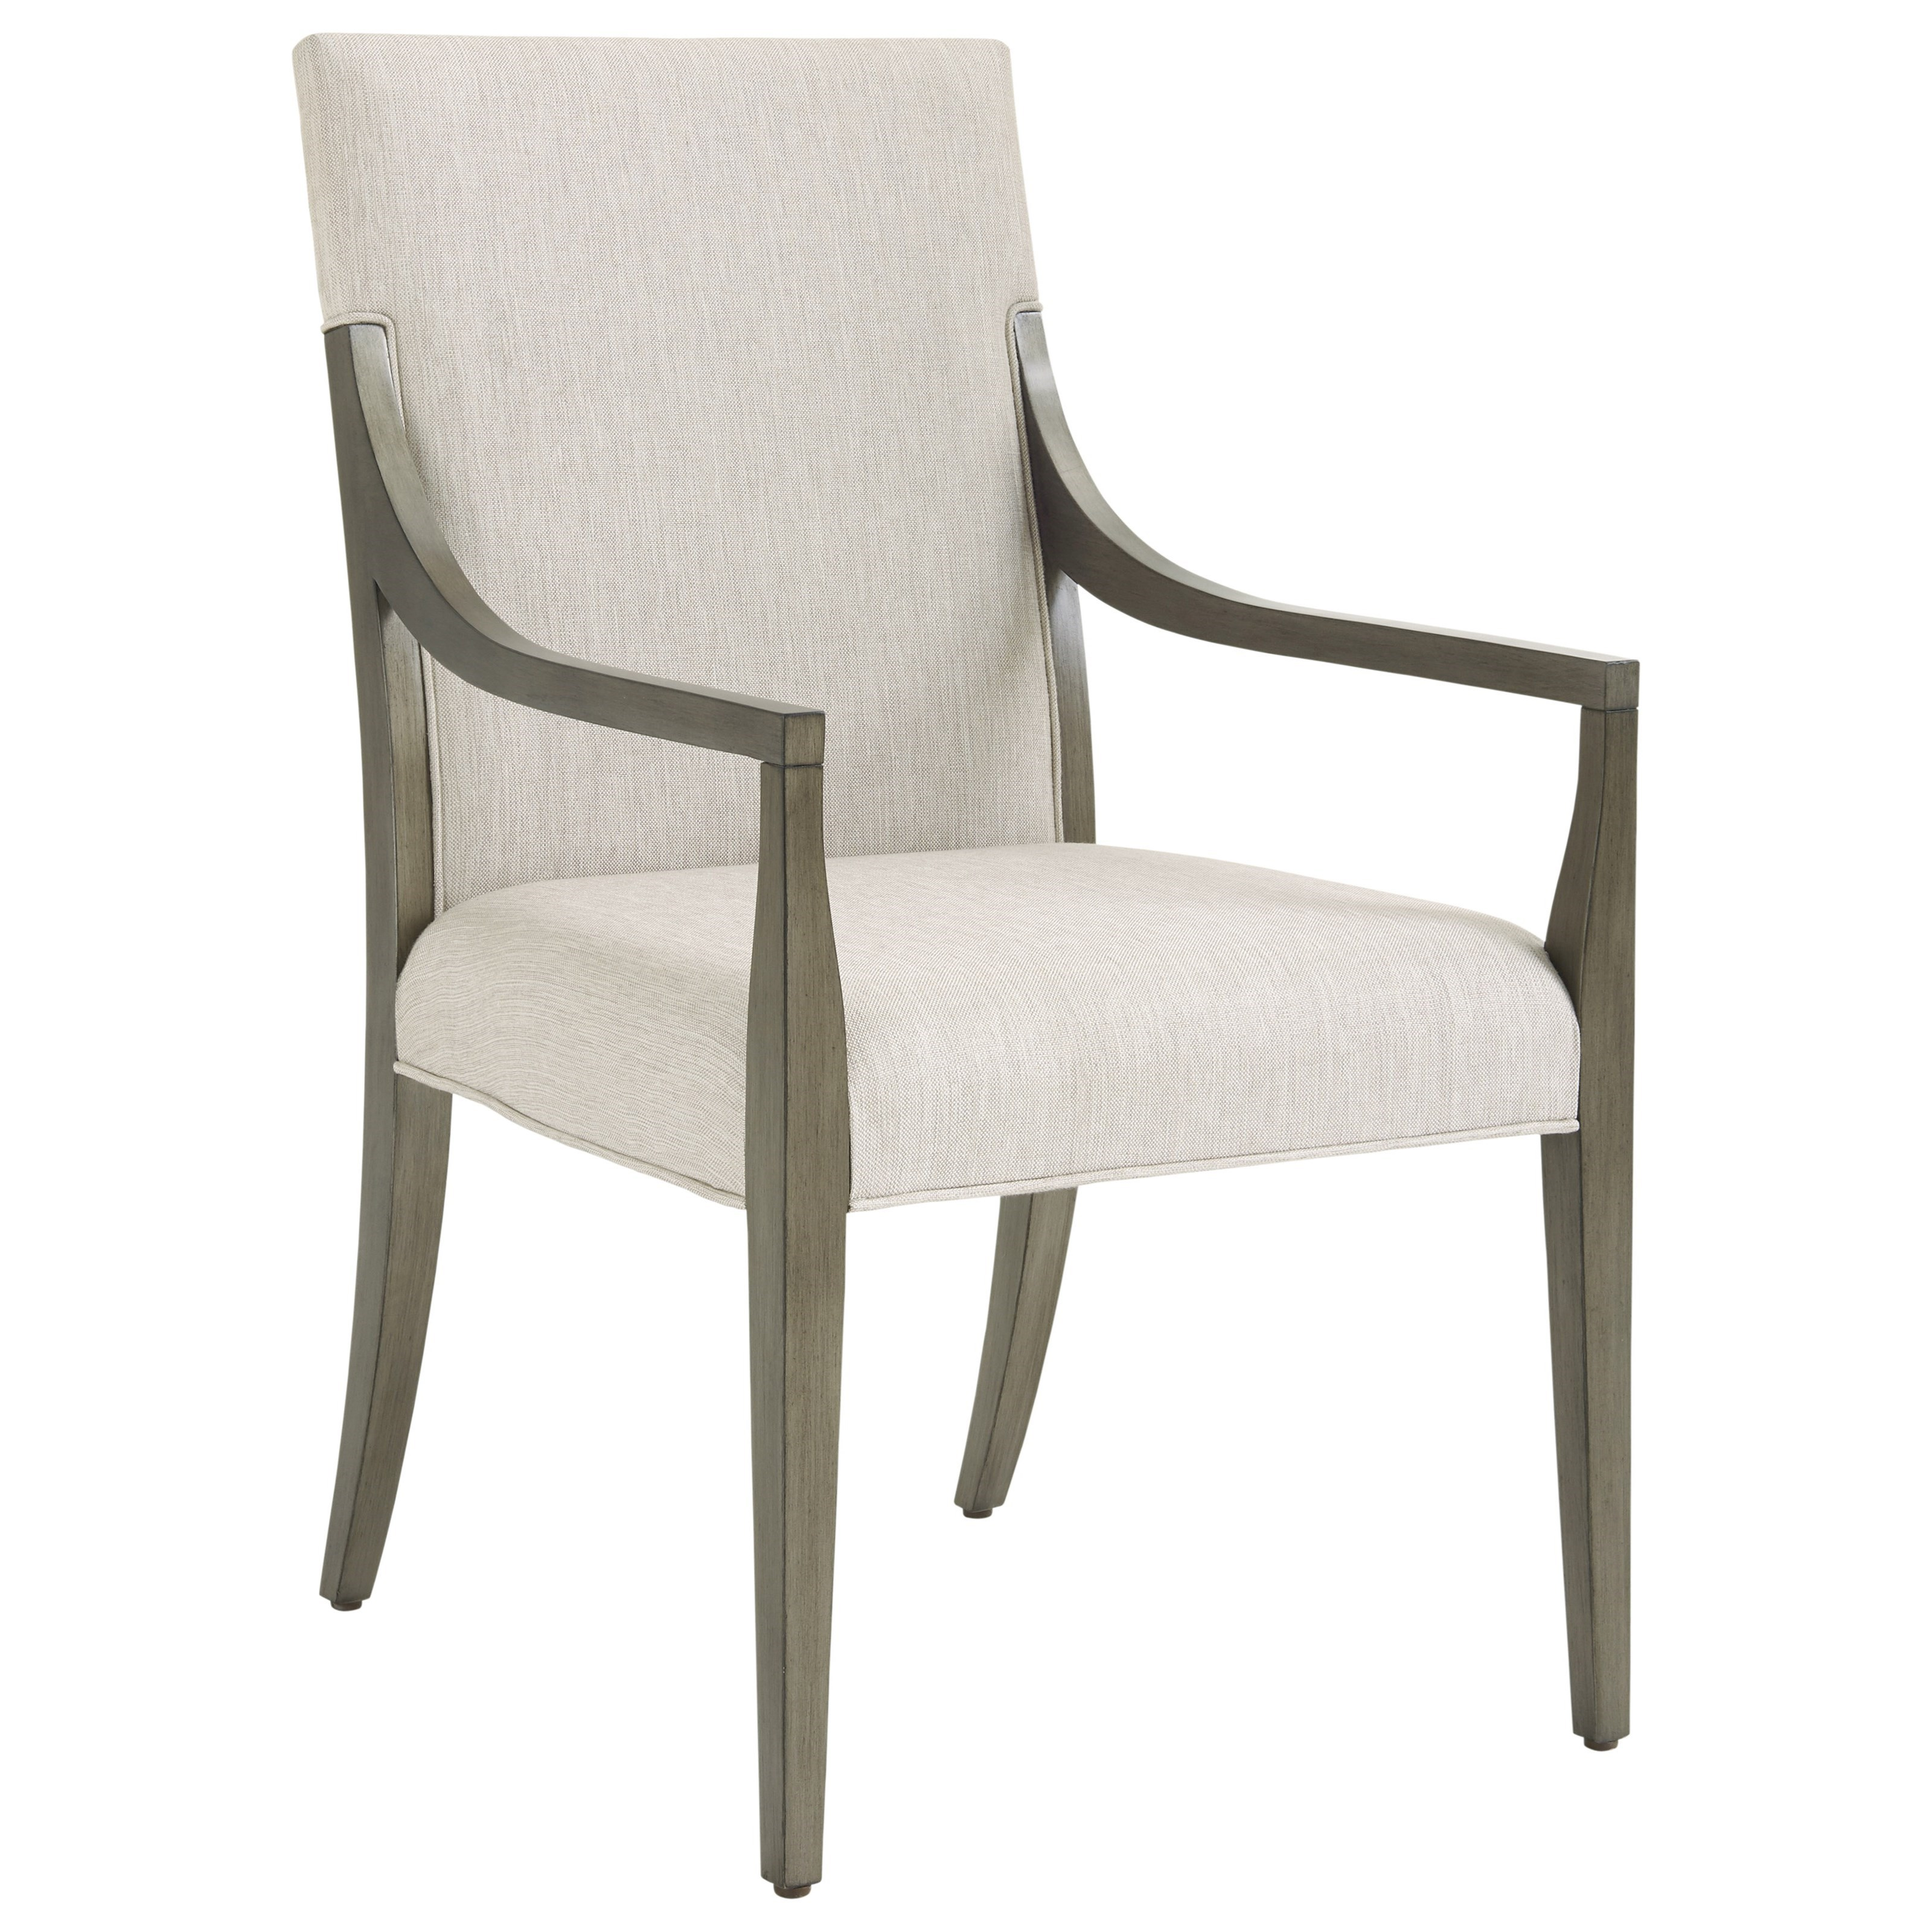 Ariana Saverne Upholstered Arm Chair (married) by Lexington at Baer's Furniture